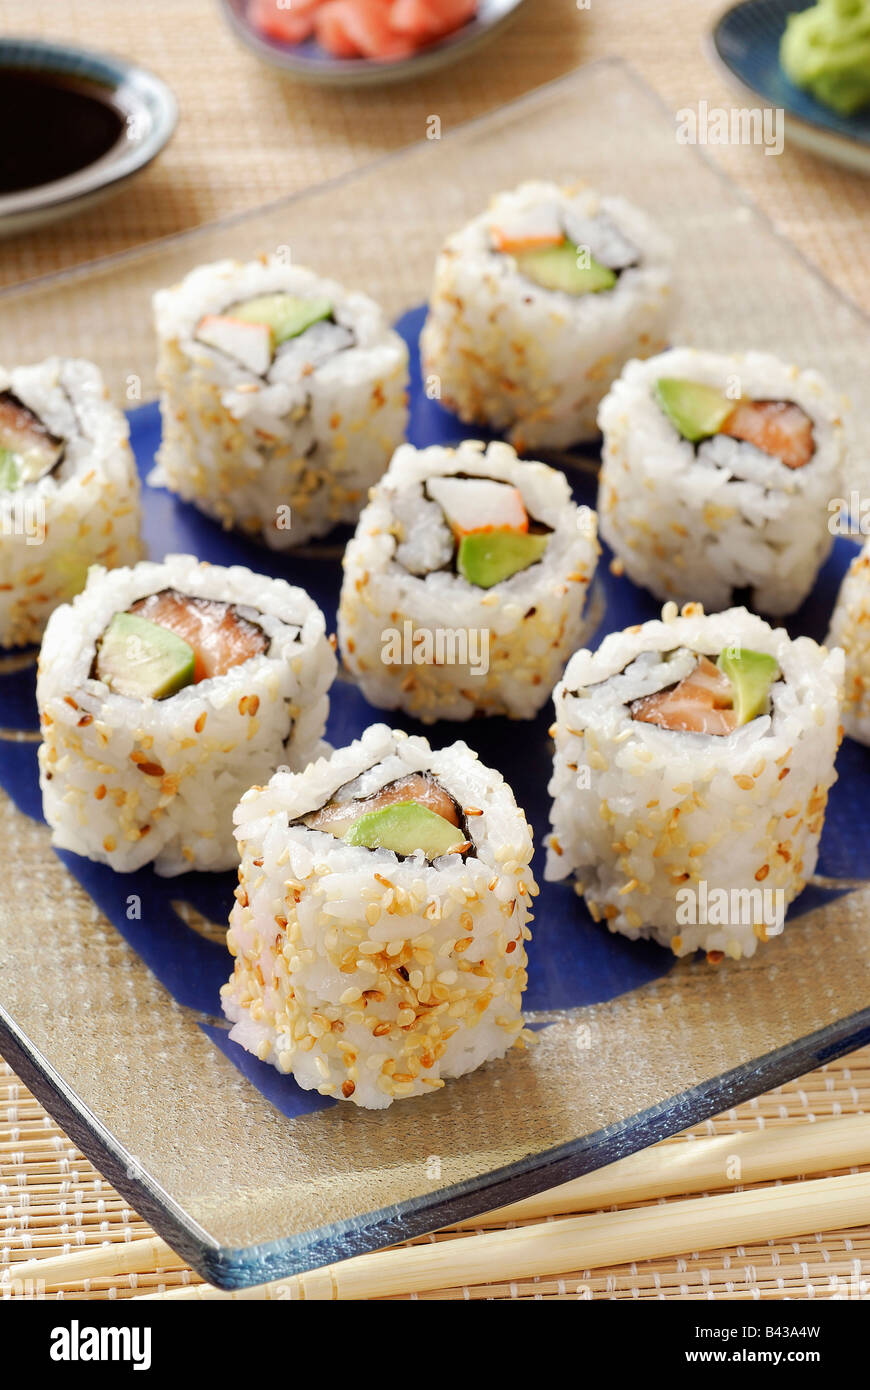 Makis Californian rolls - Stock Image